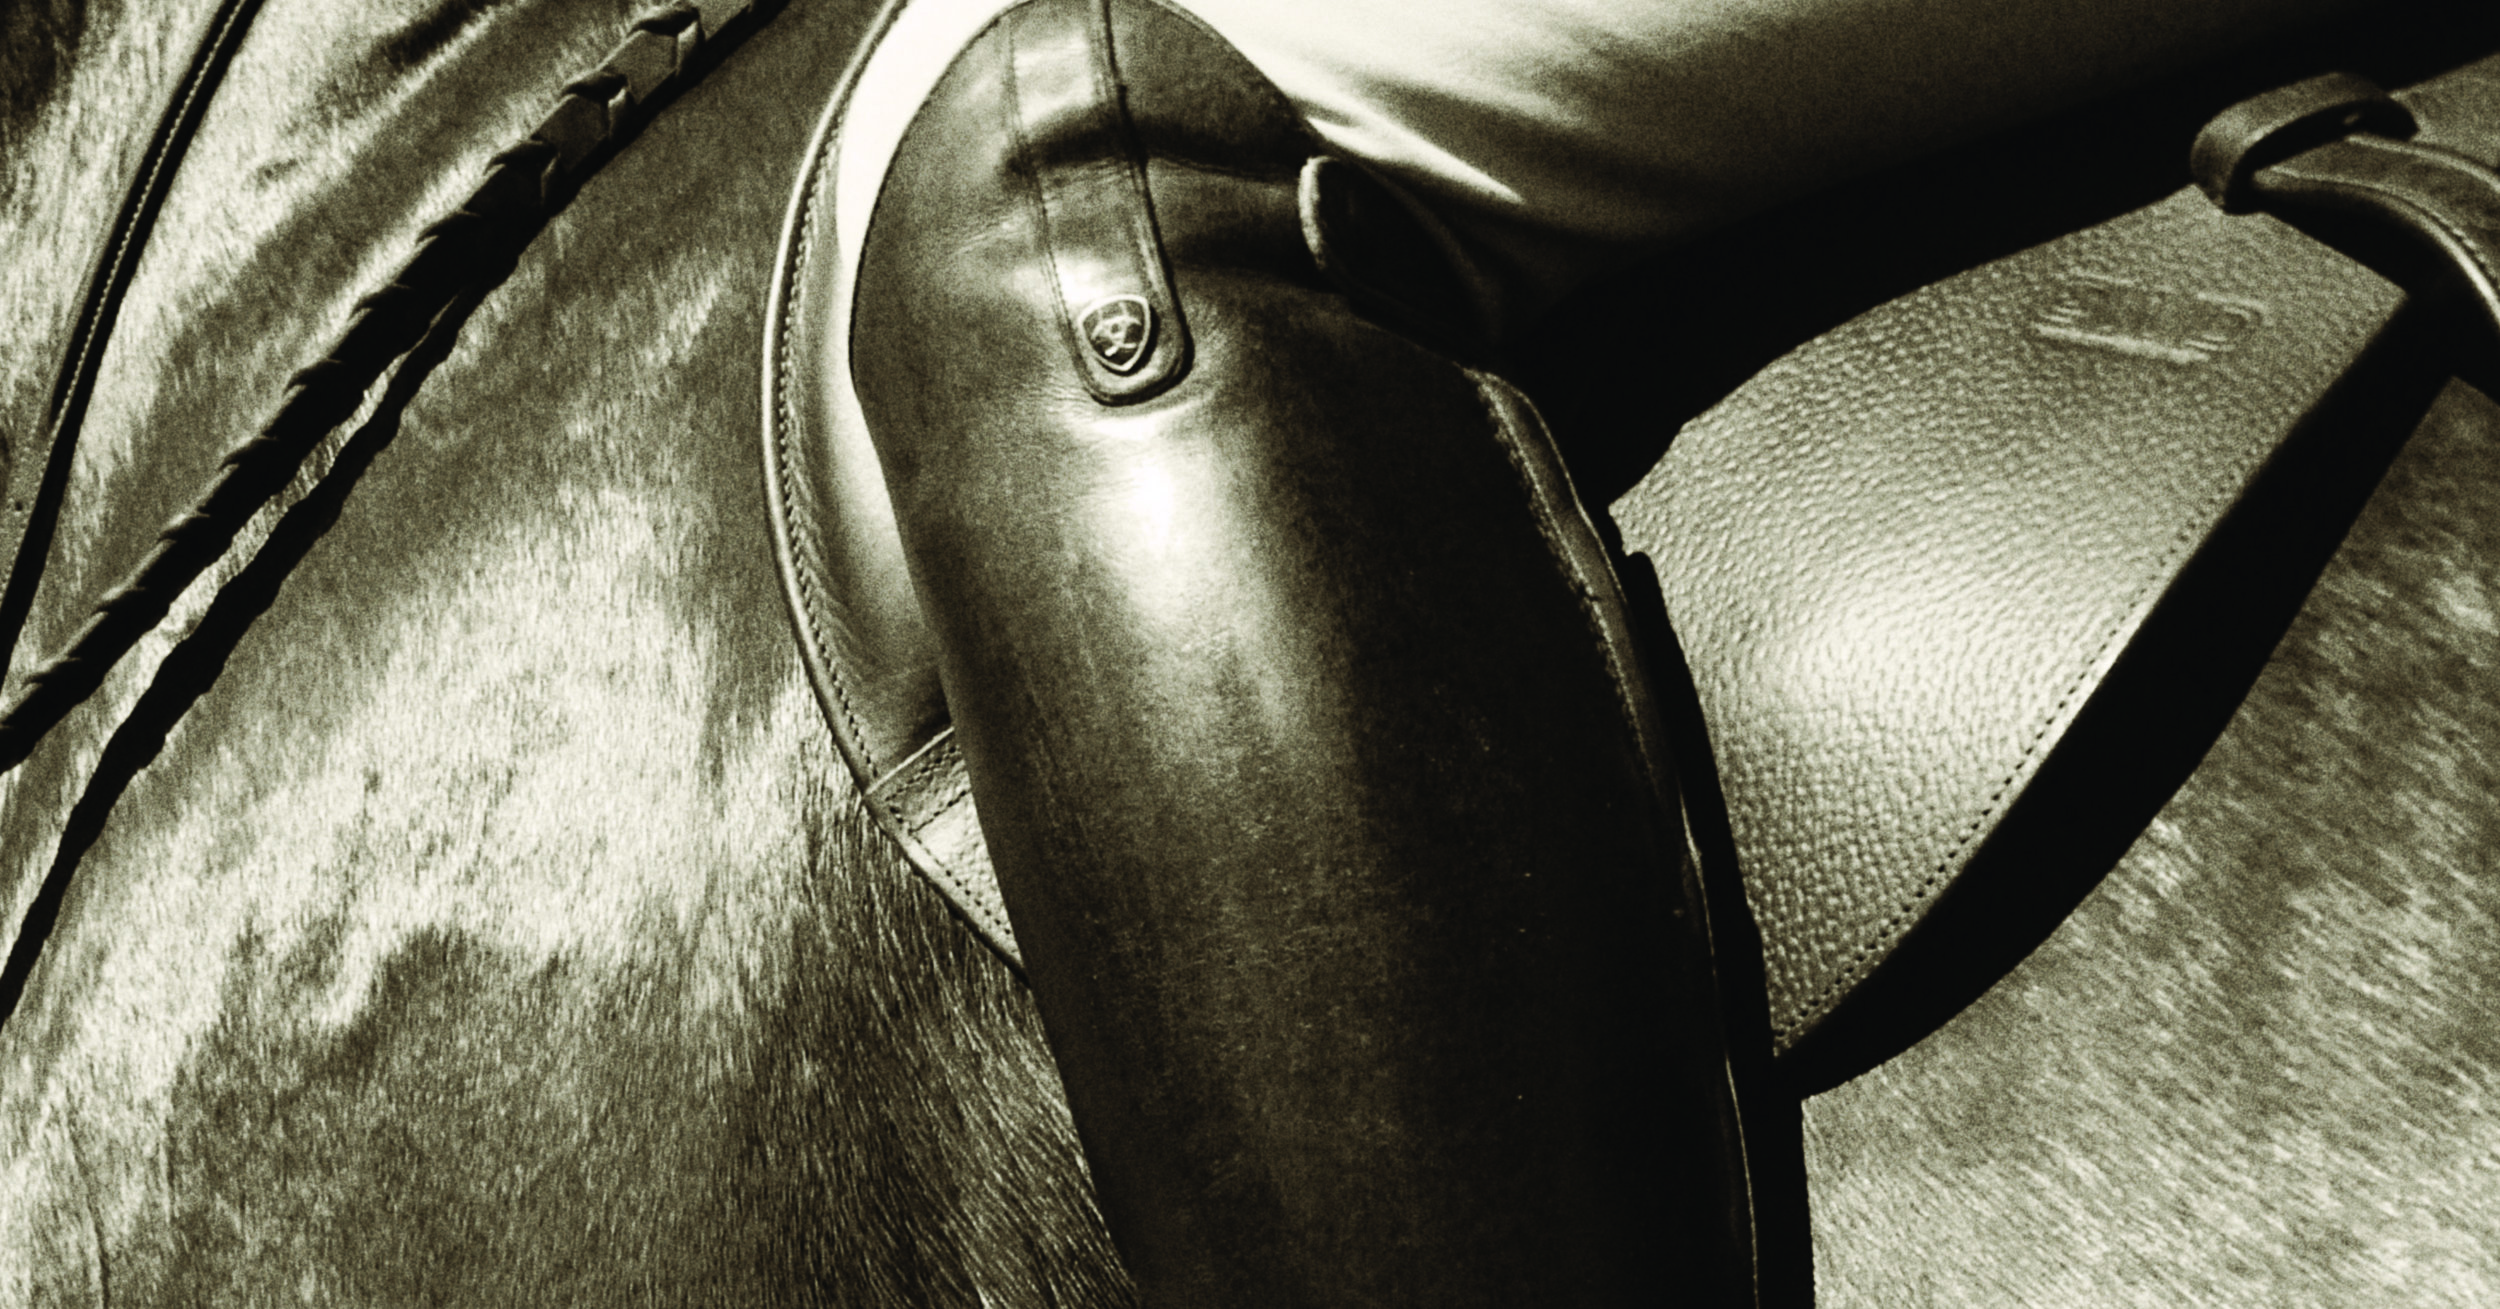 Sterling Essentials Tall Boot Image 1200x628.jpg